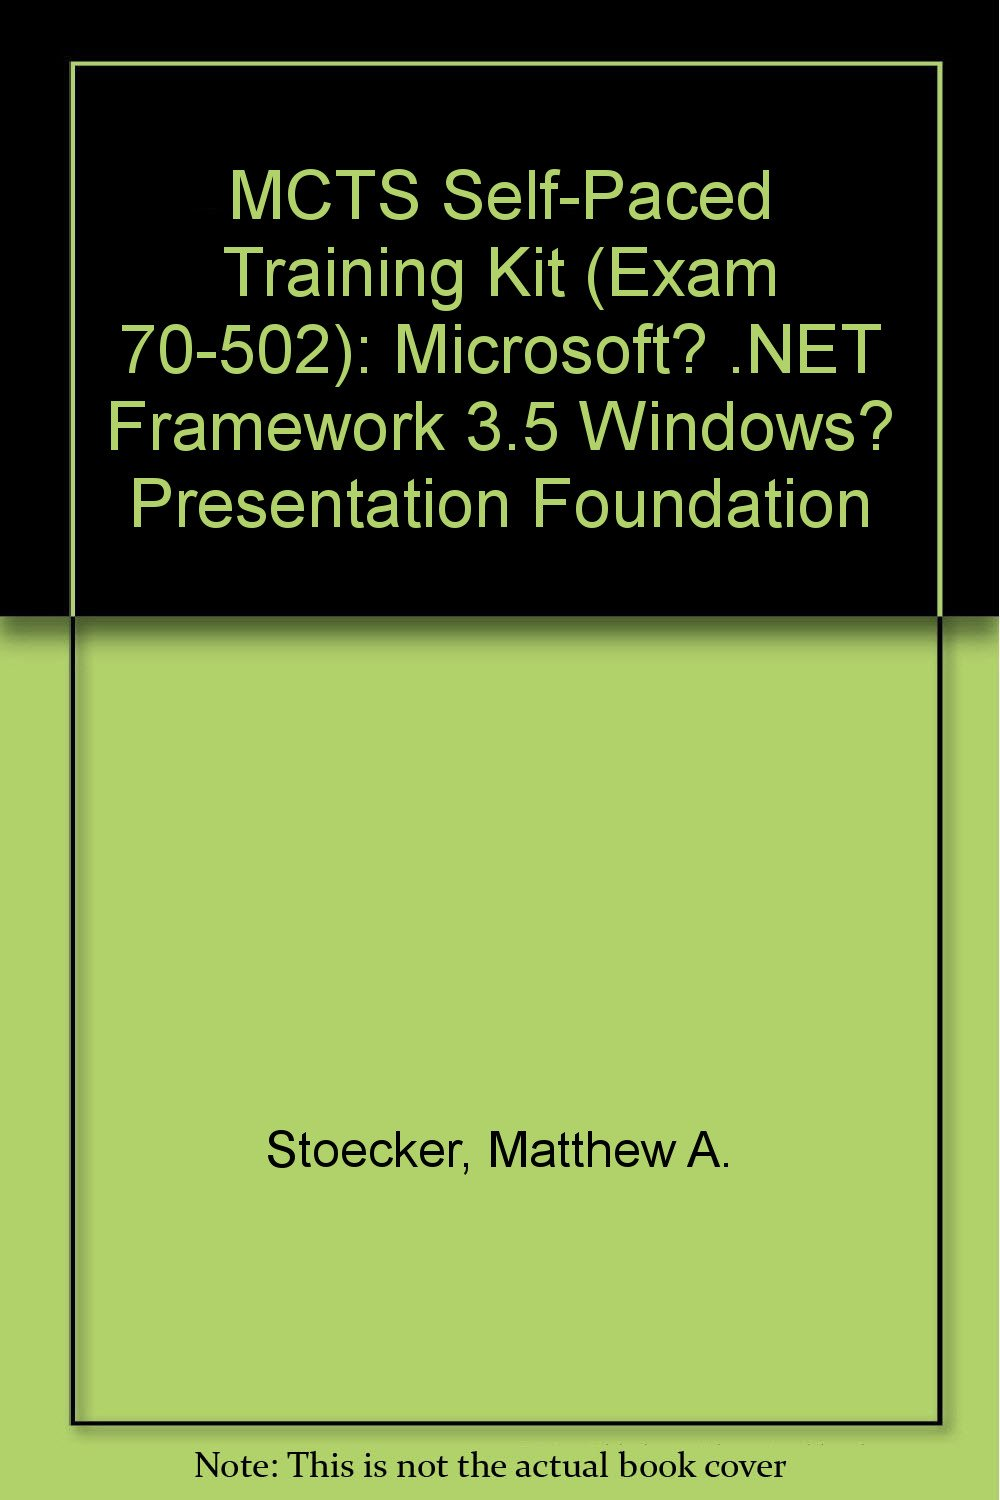 Mcts Self Paced Training Kit Exam 70 502 Microsoft Framework